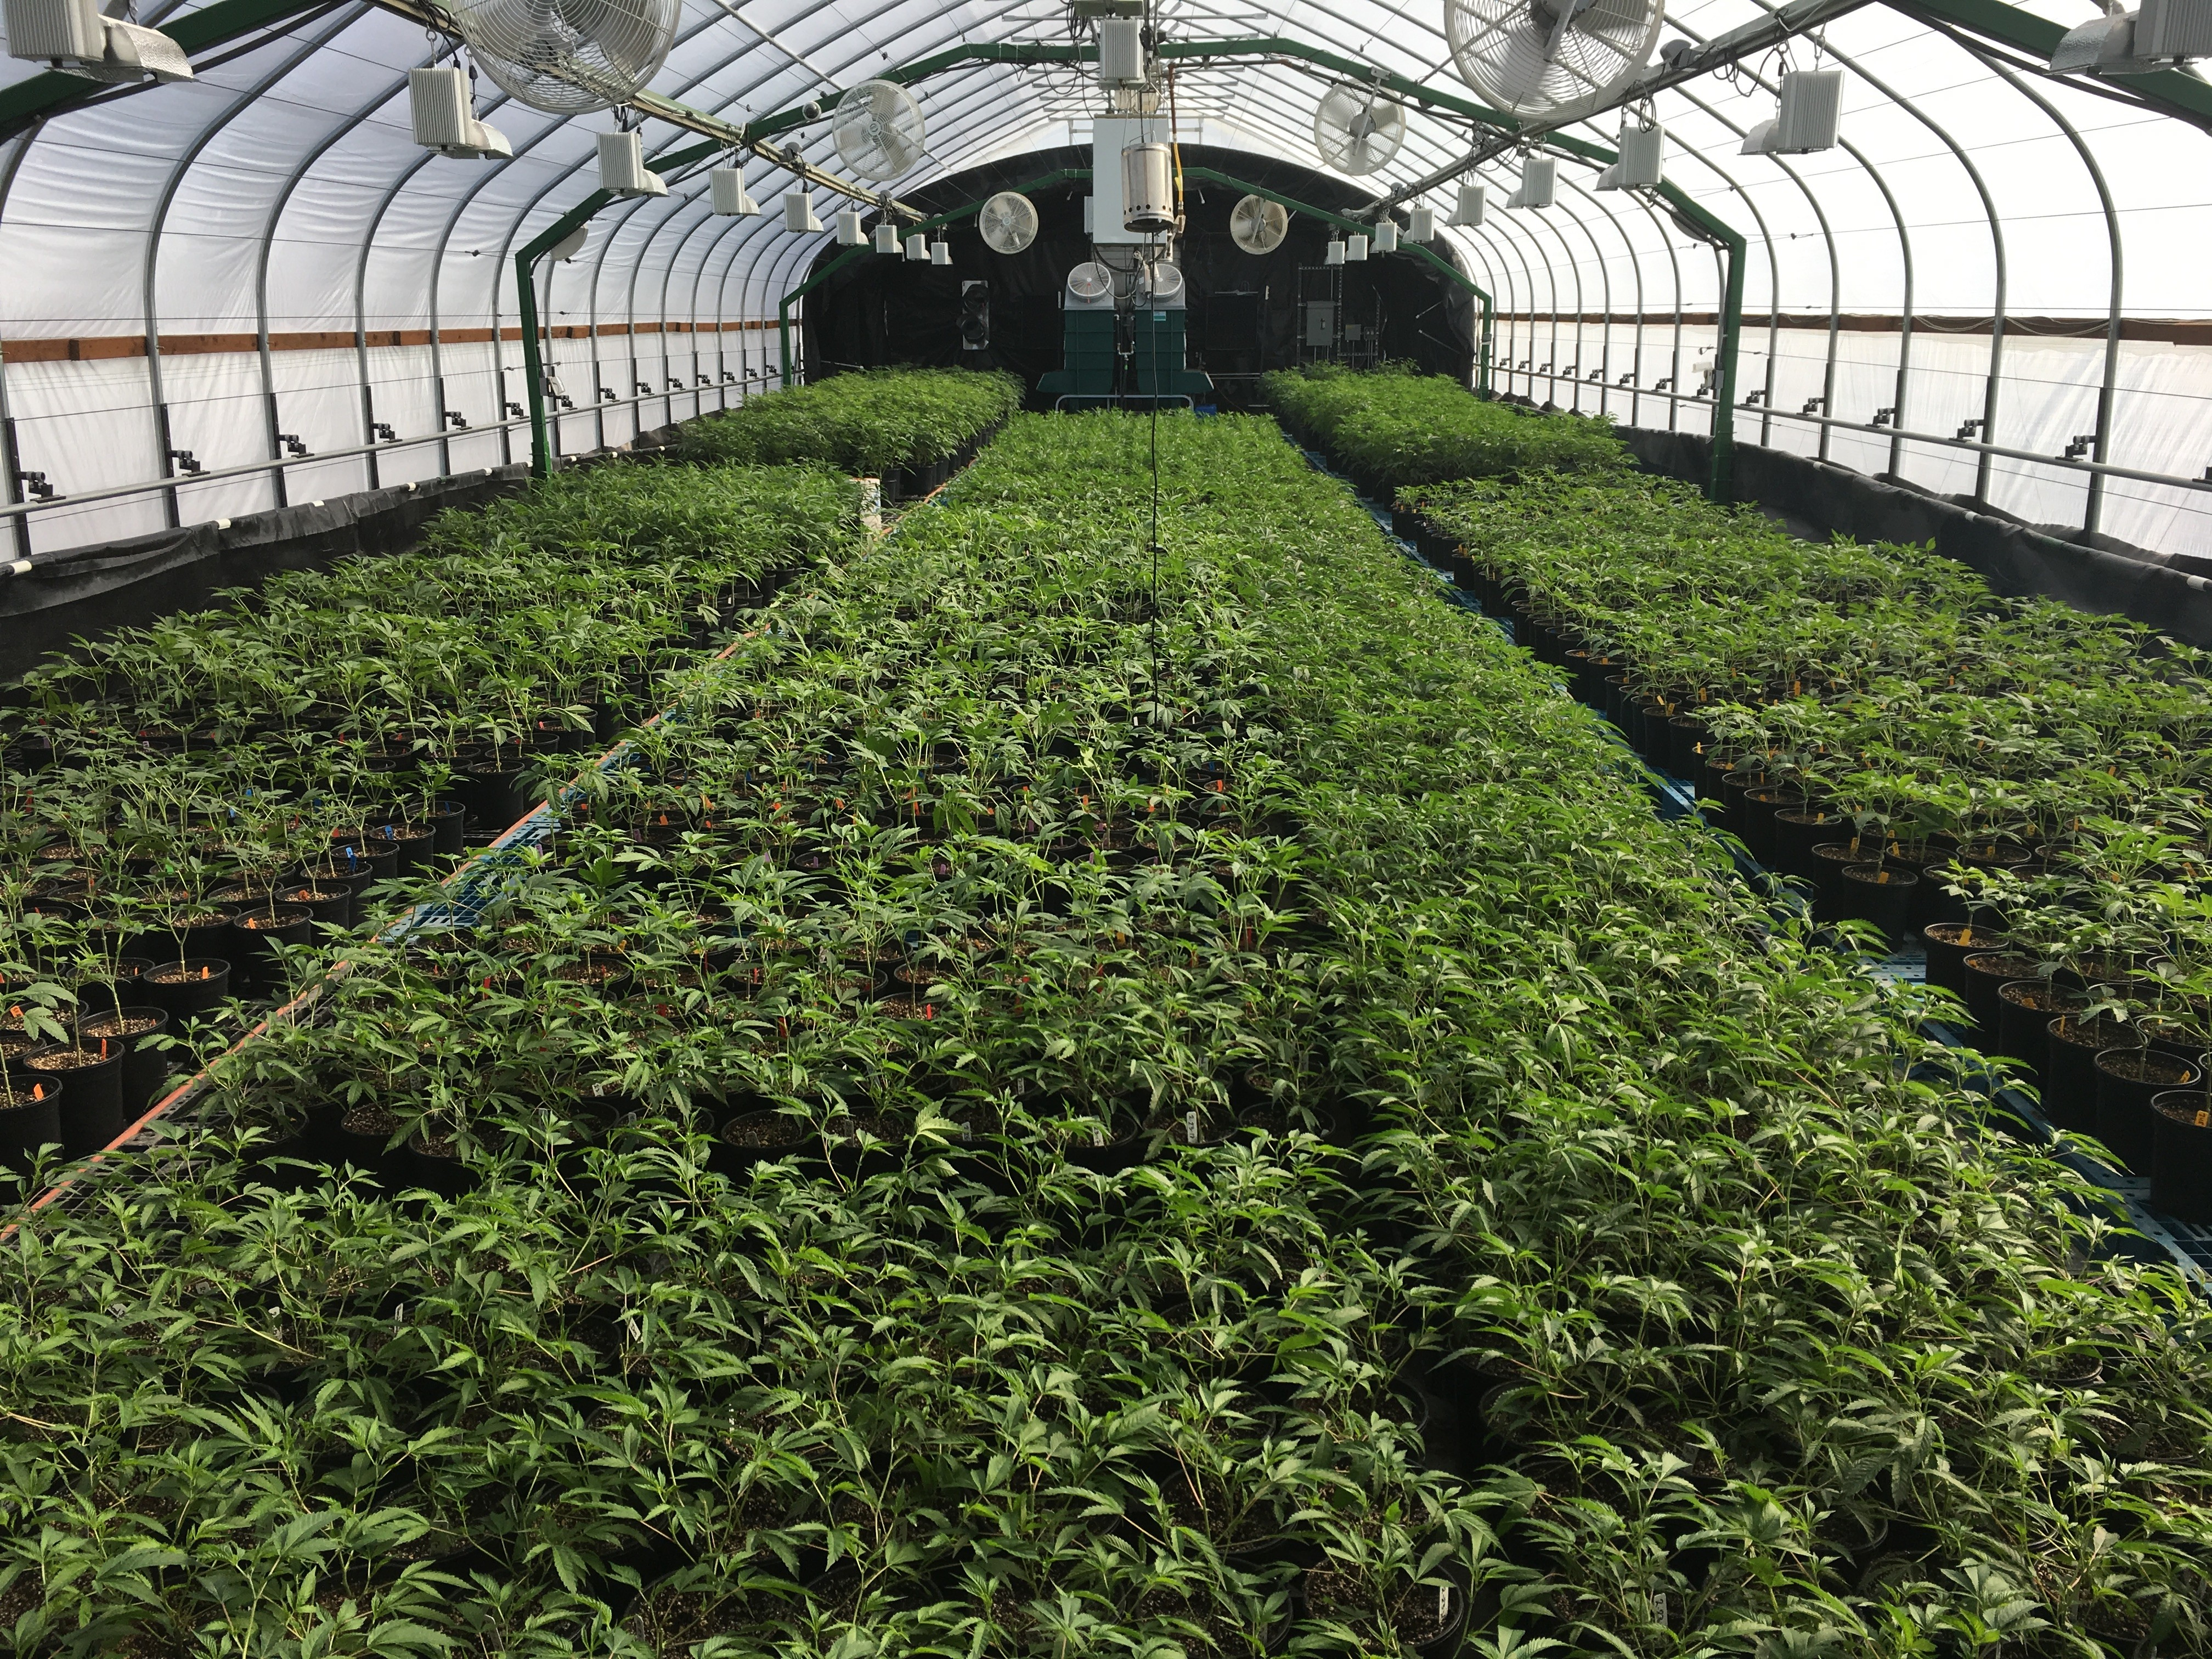 Heroes of the Farm Greenhouse Nursery legal cannabis